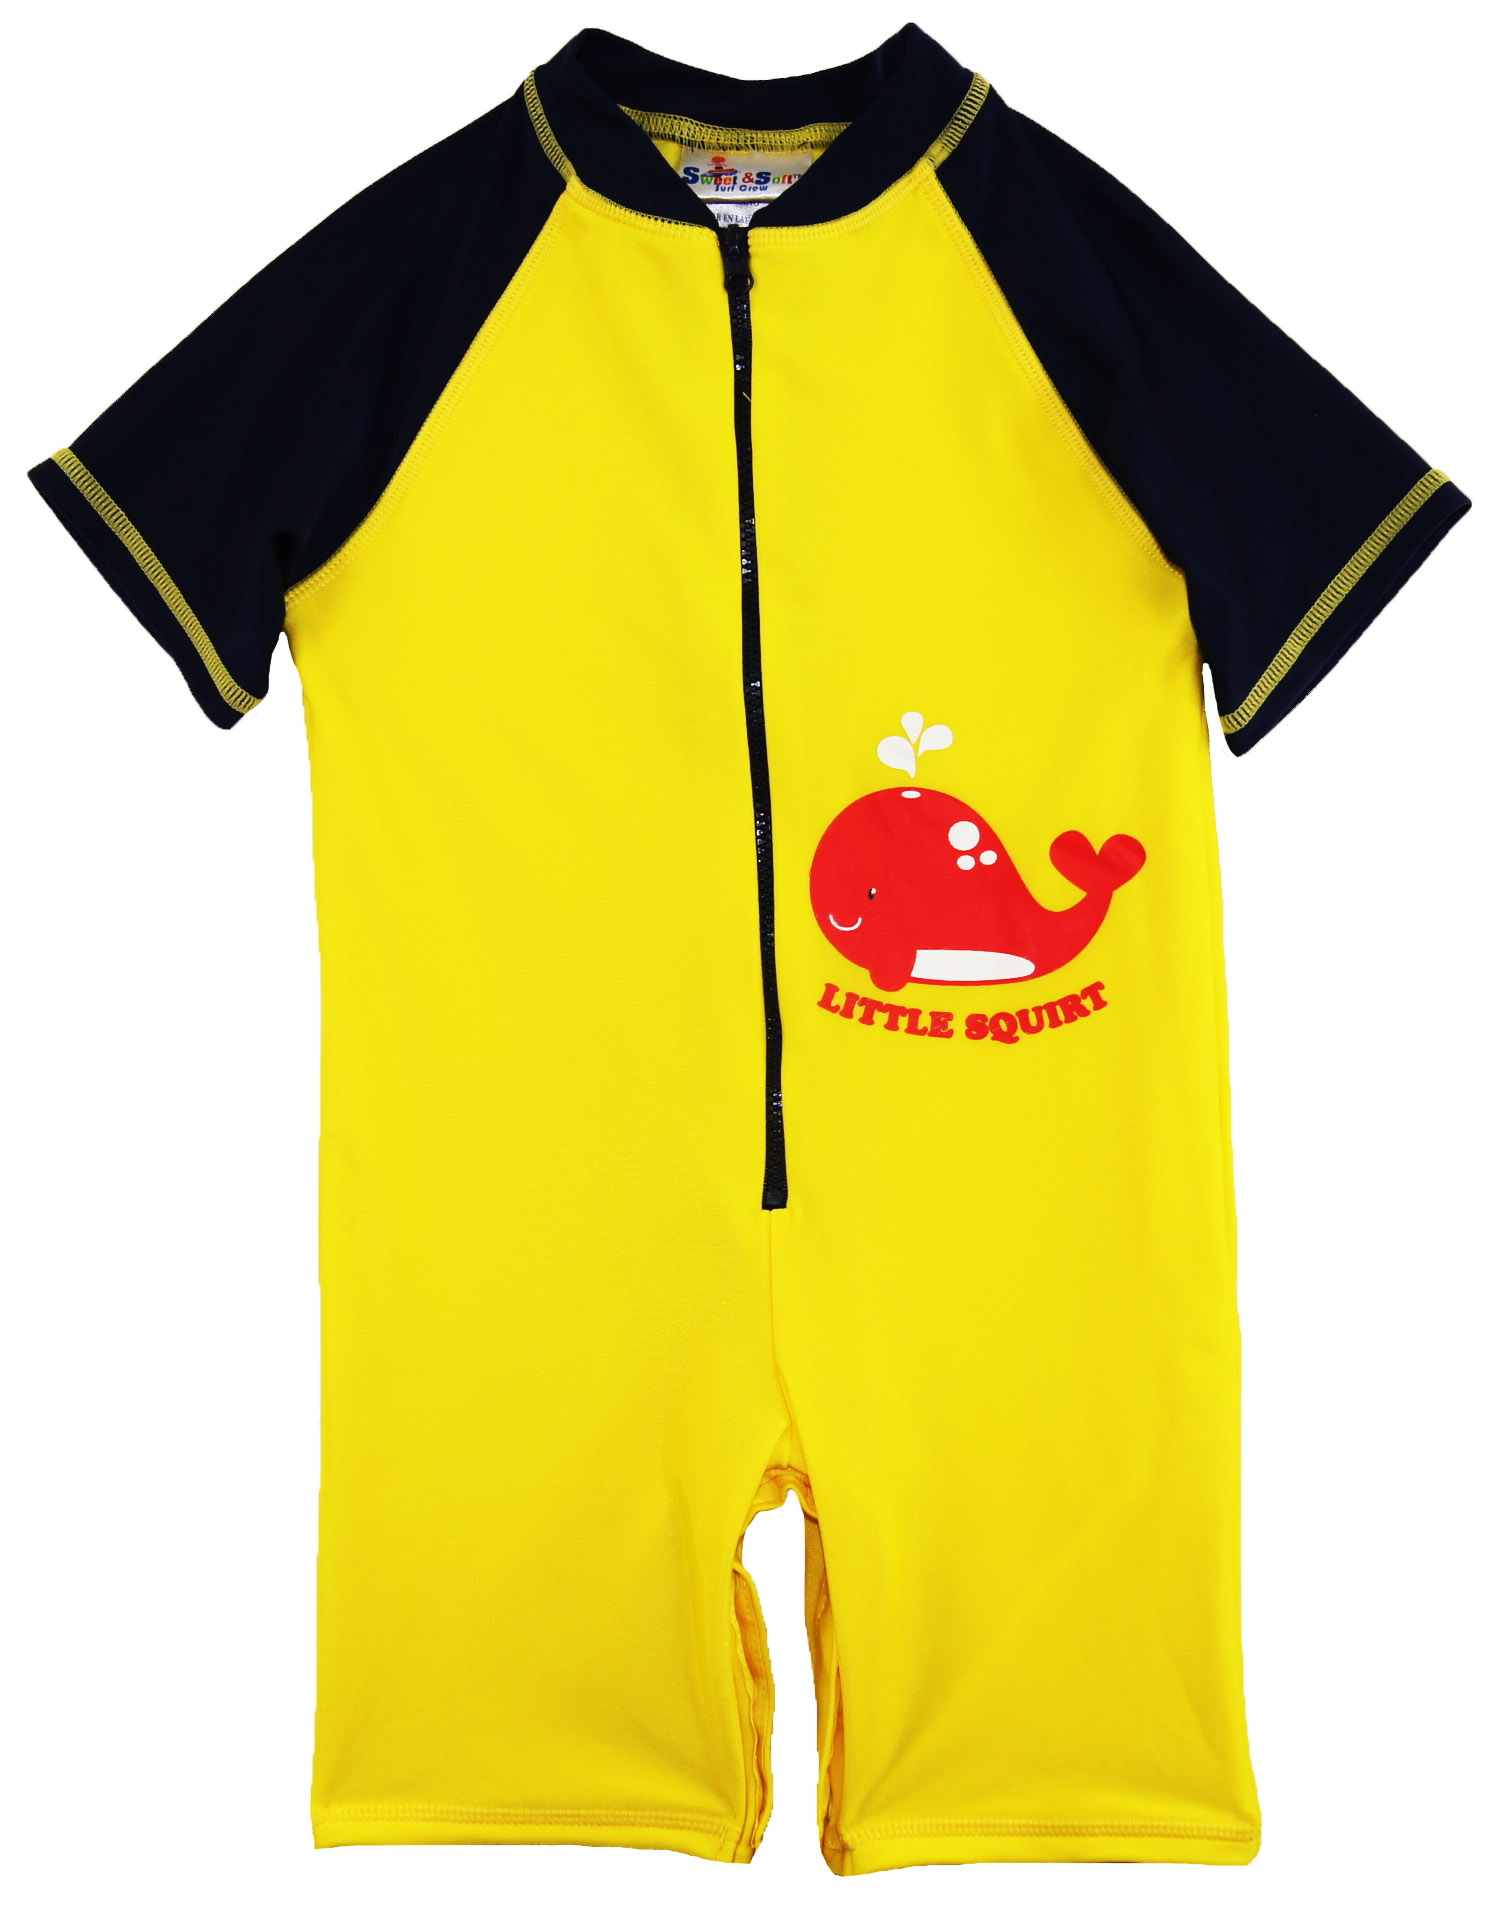 Sweet & Soft Toddler Boys Swimwear Whale Squirt Rashguard Beach Swimsuit